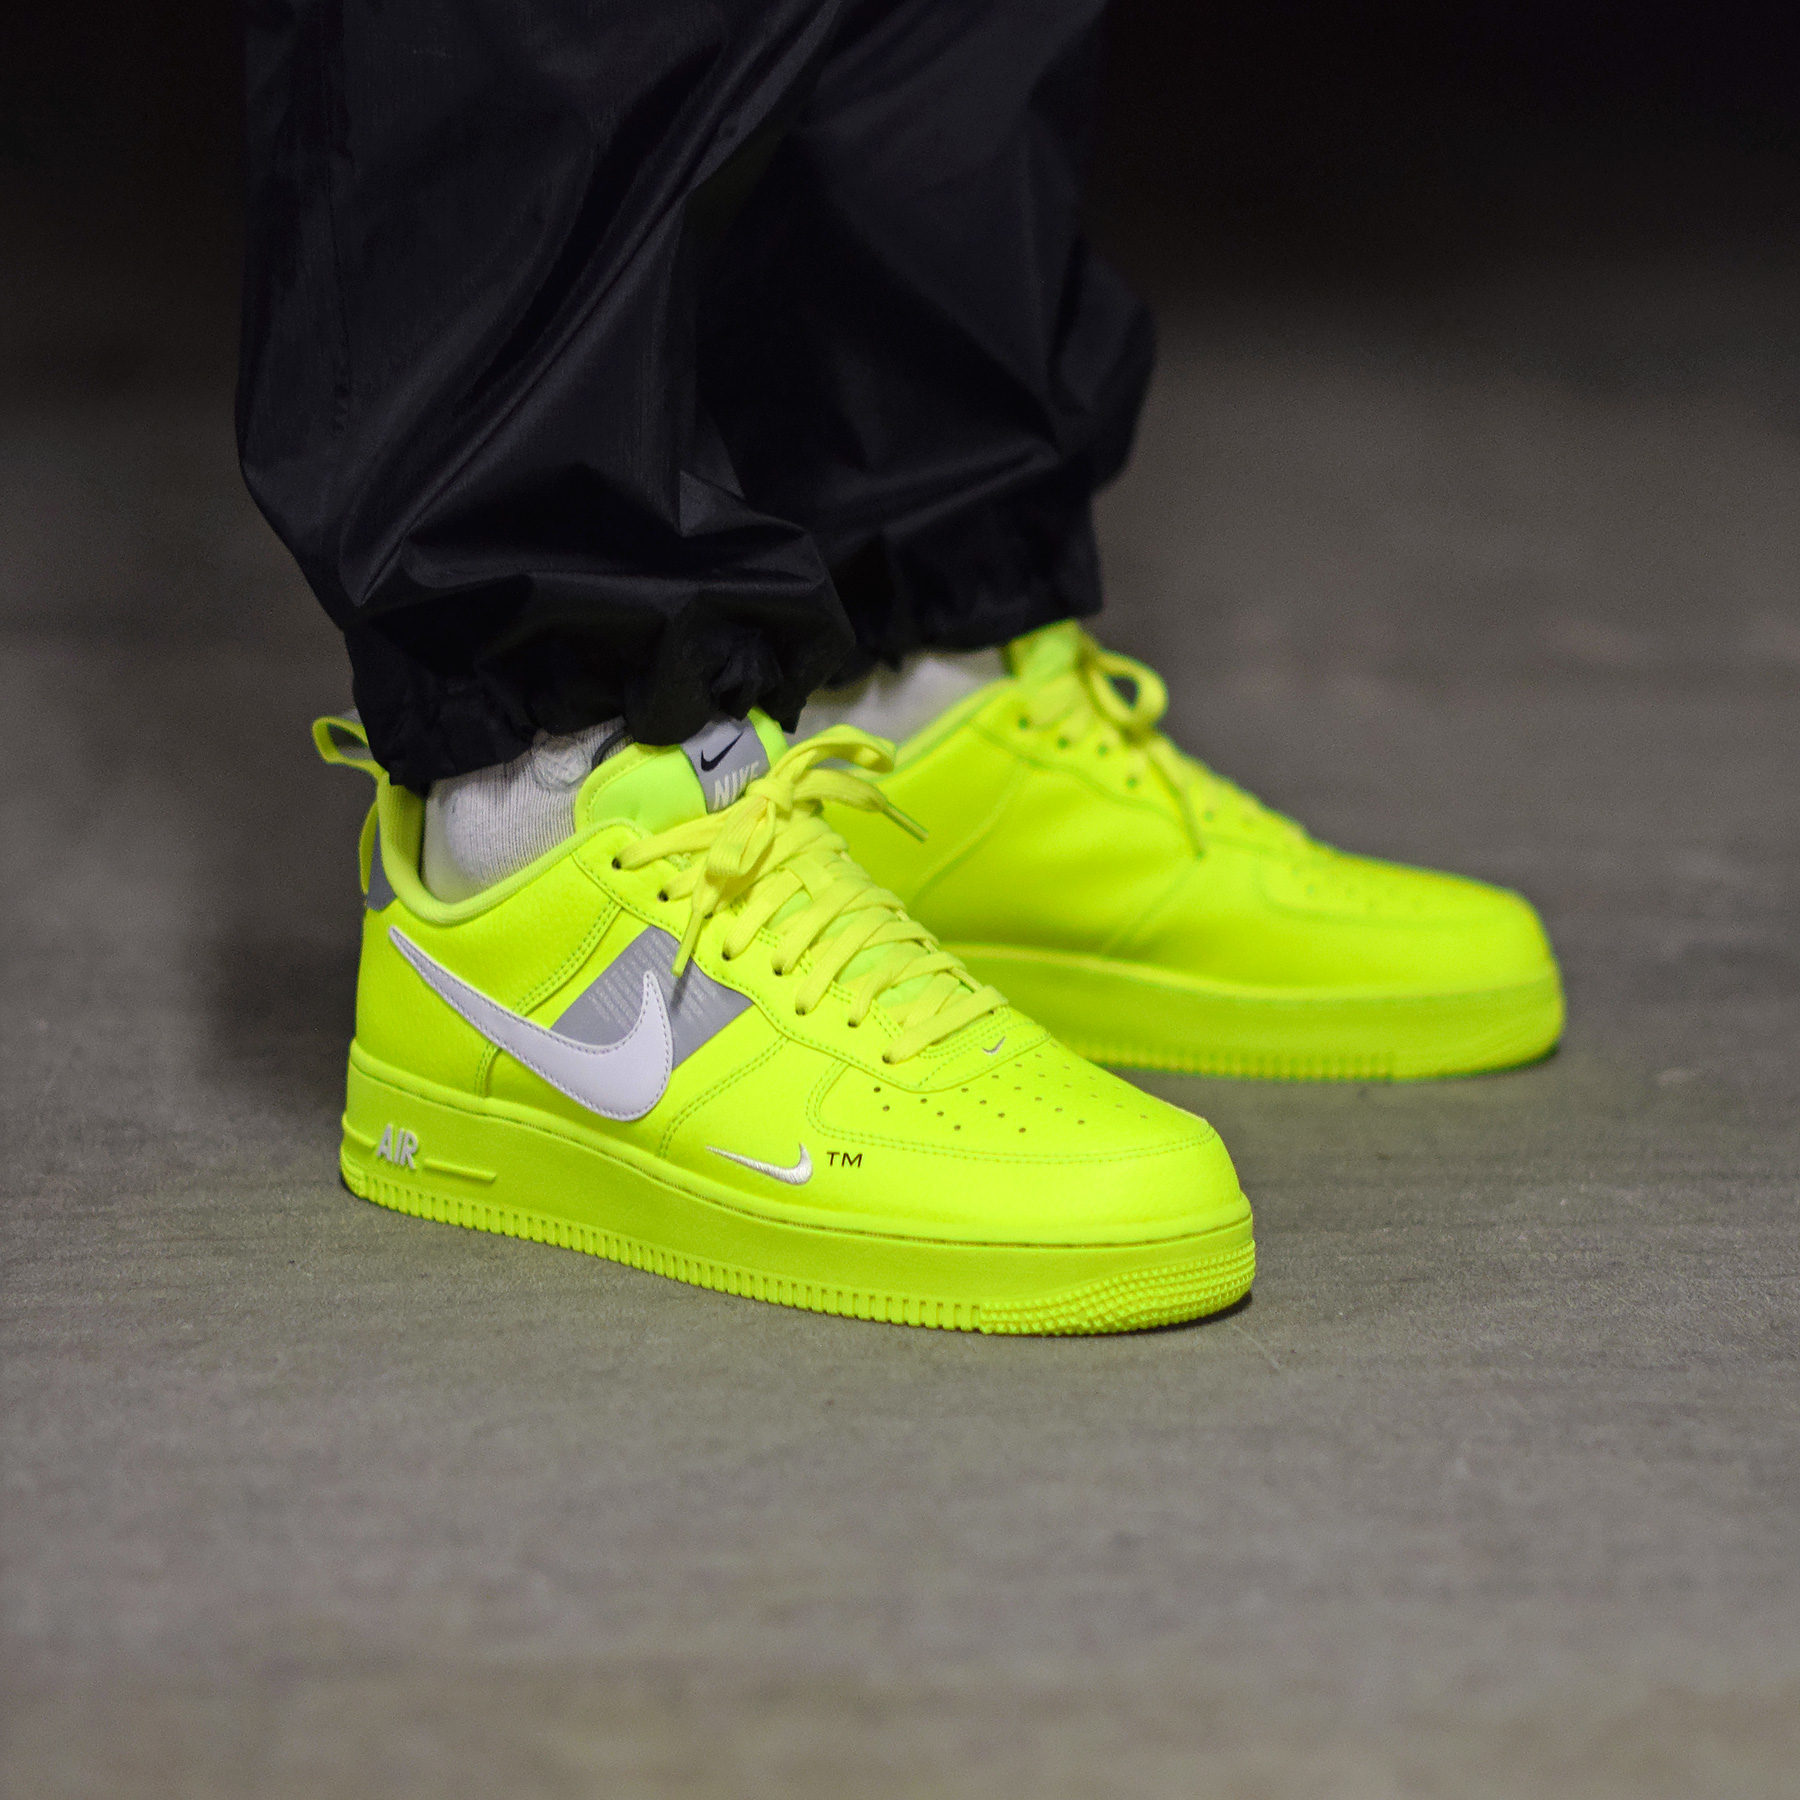 Look Out For The Nike Air Force 1 07 LV8 Utility Volt